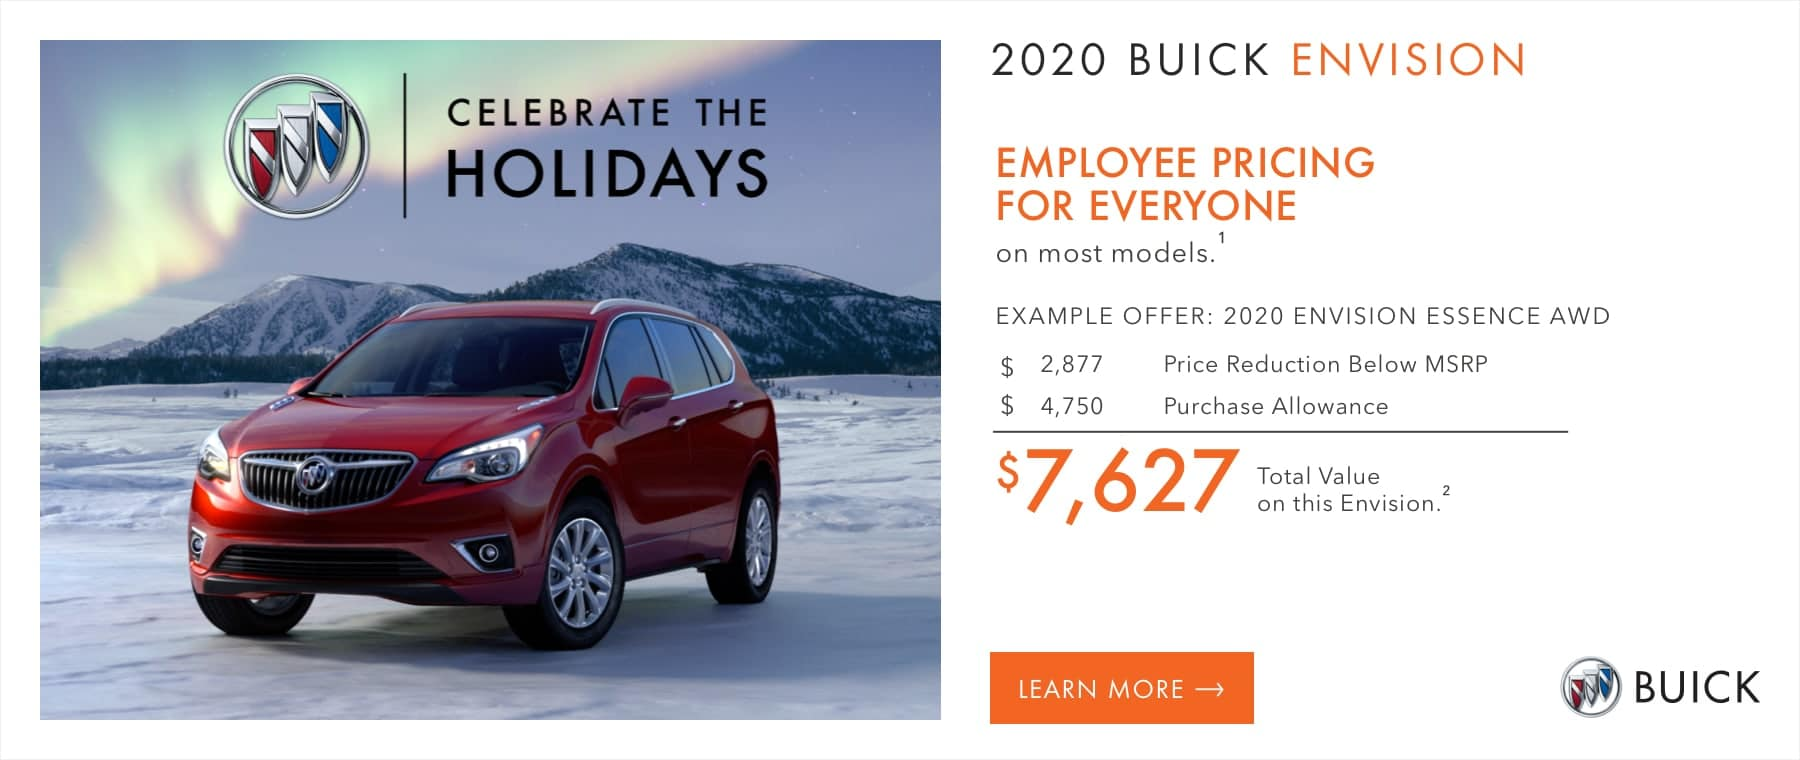 EMPLOYEE PRICING FOR EVERYONE on most models.